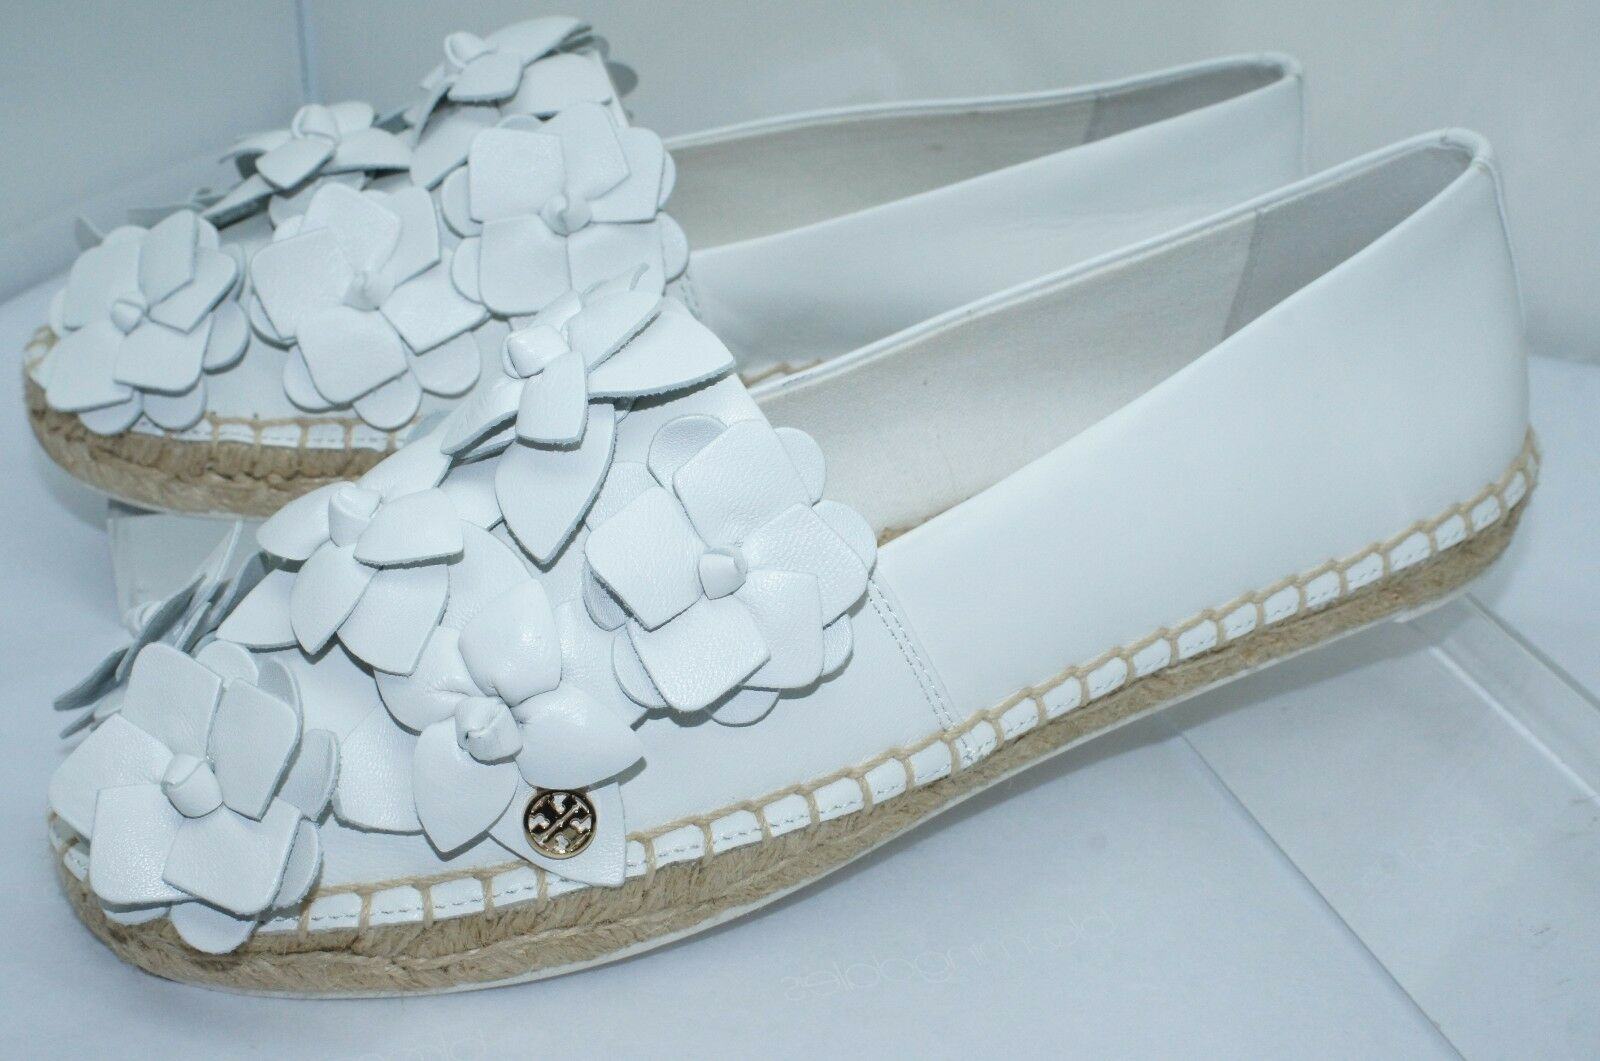 60523be14fe Tory Burch Blossom Espadrille White Shoes Size 8 Flat Leather Slip ...